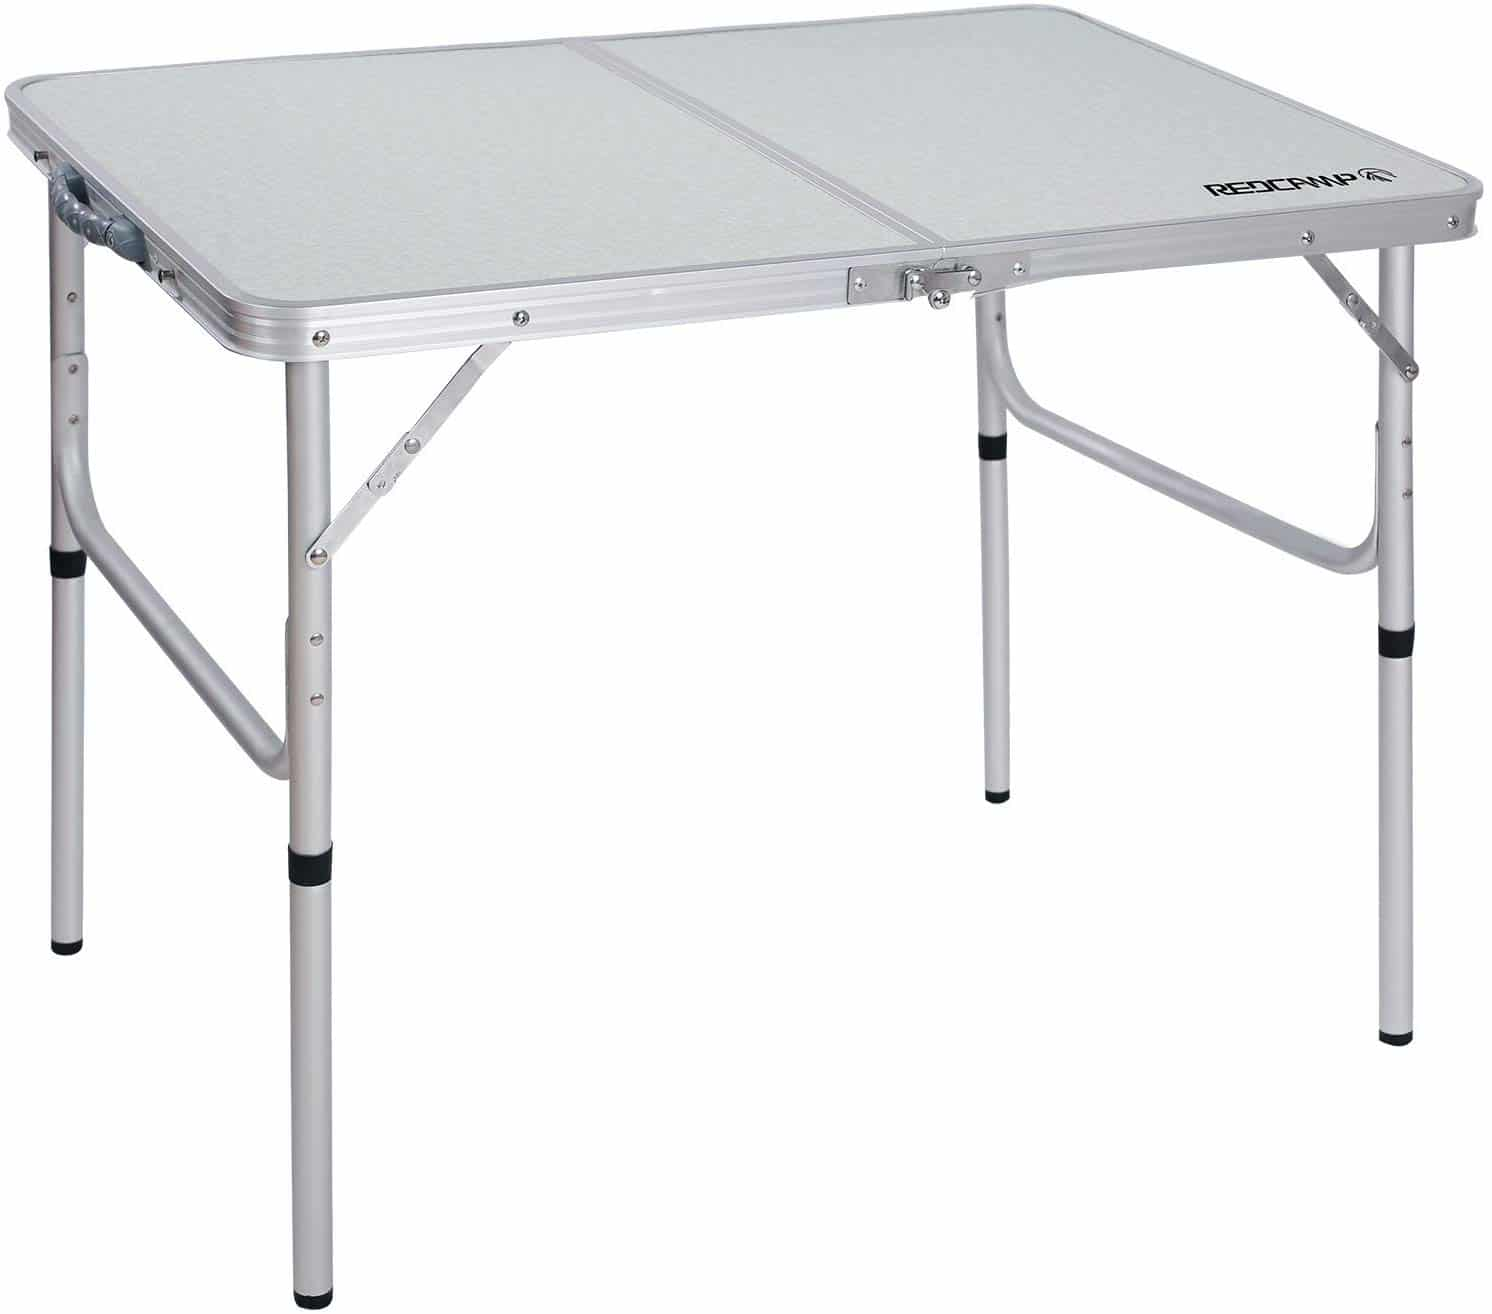 RED CAMP Adjustable Portable Camping Table